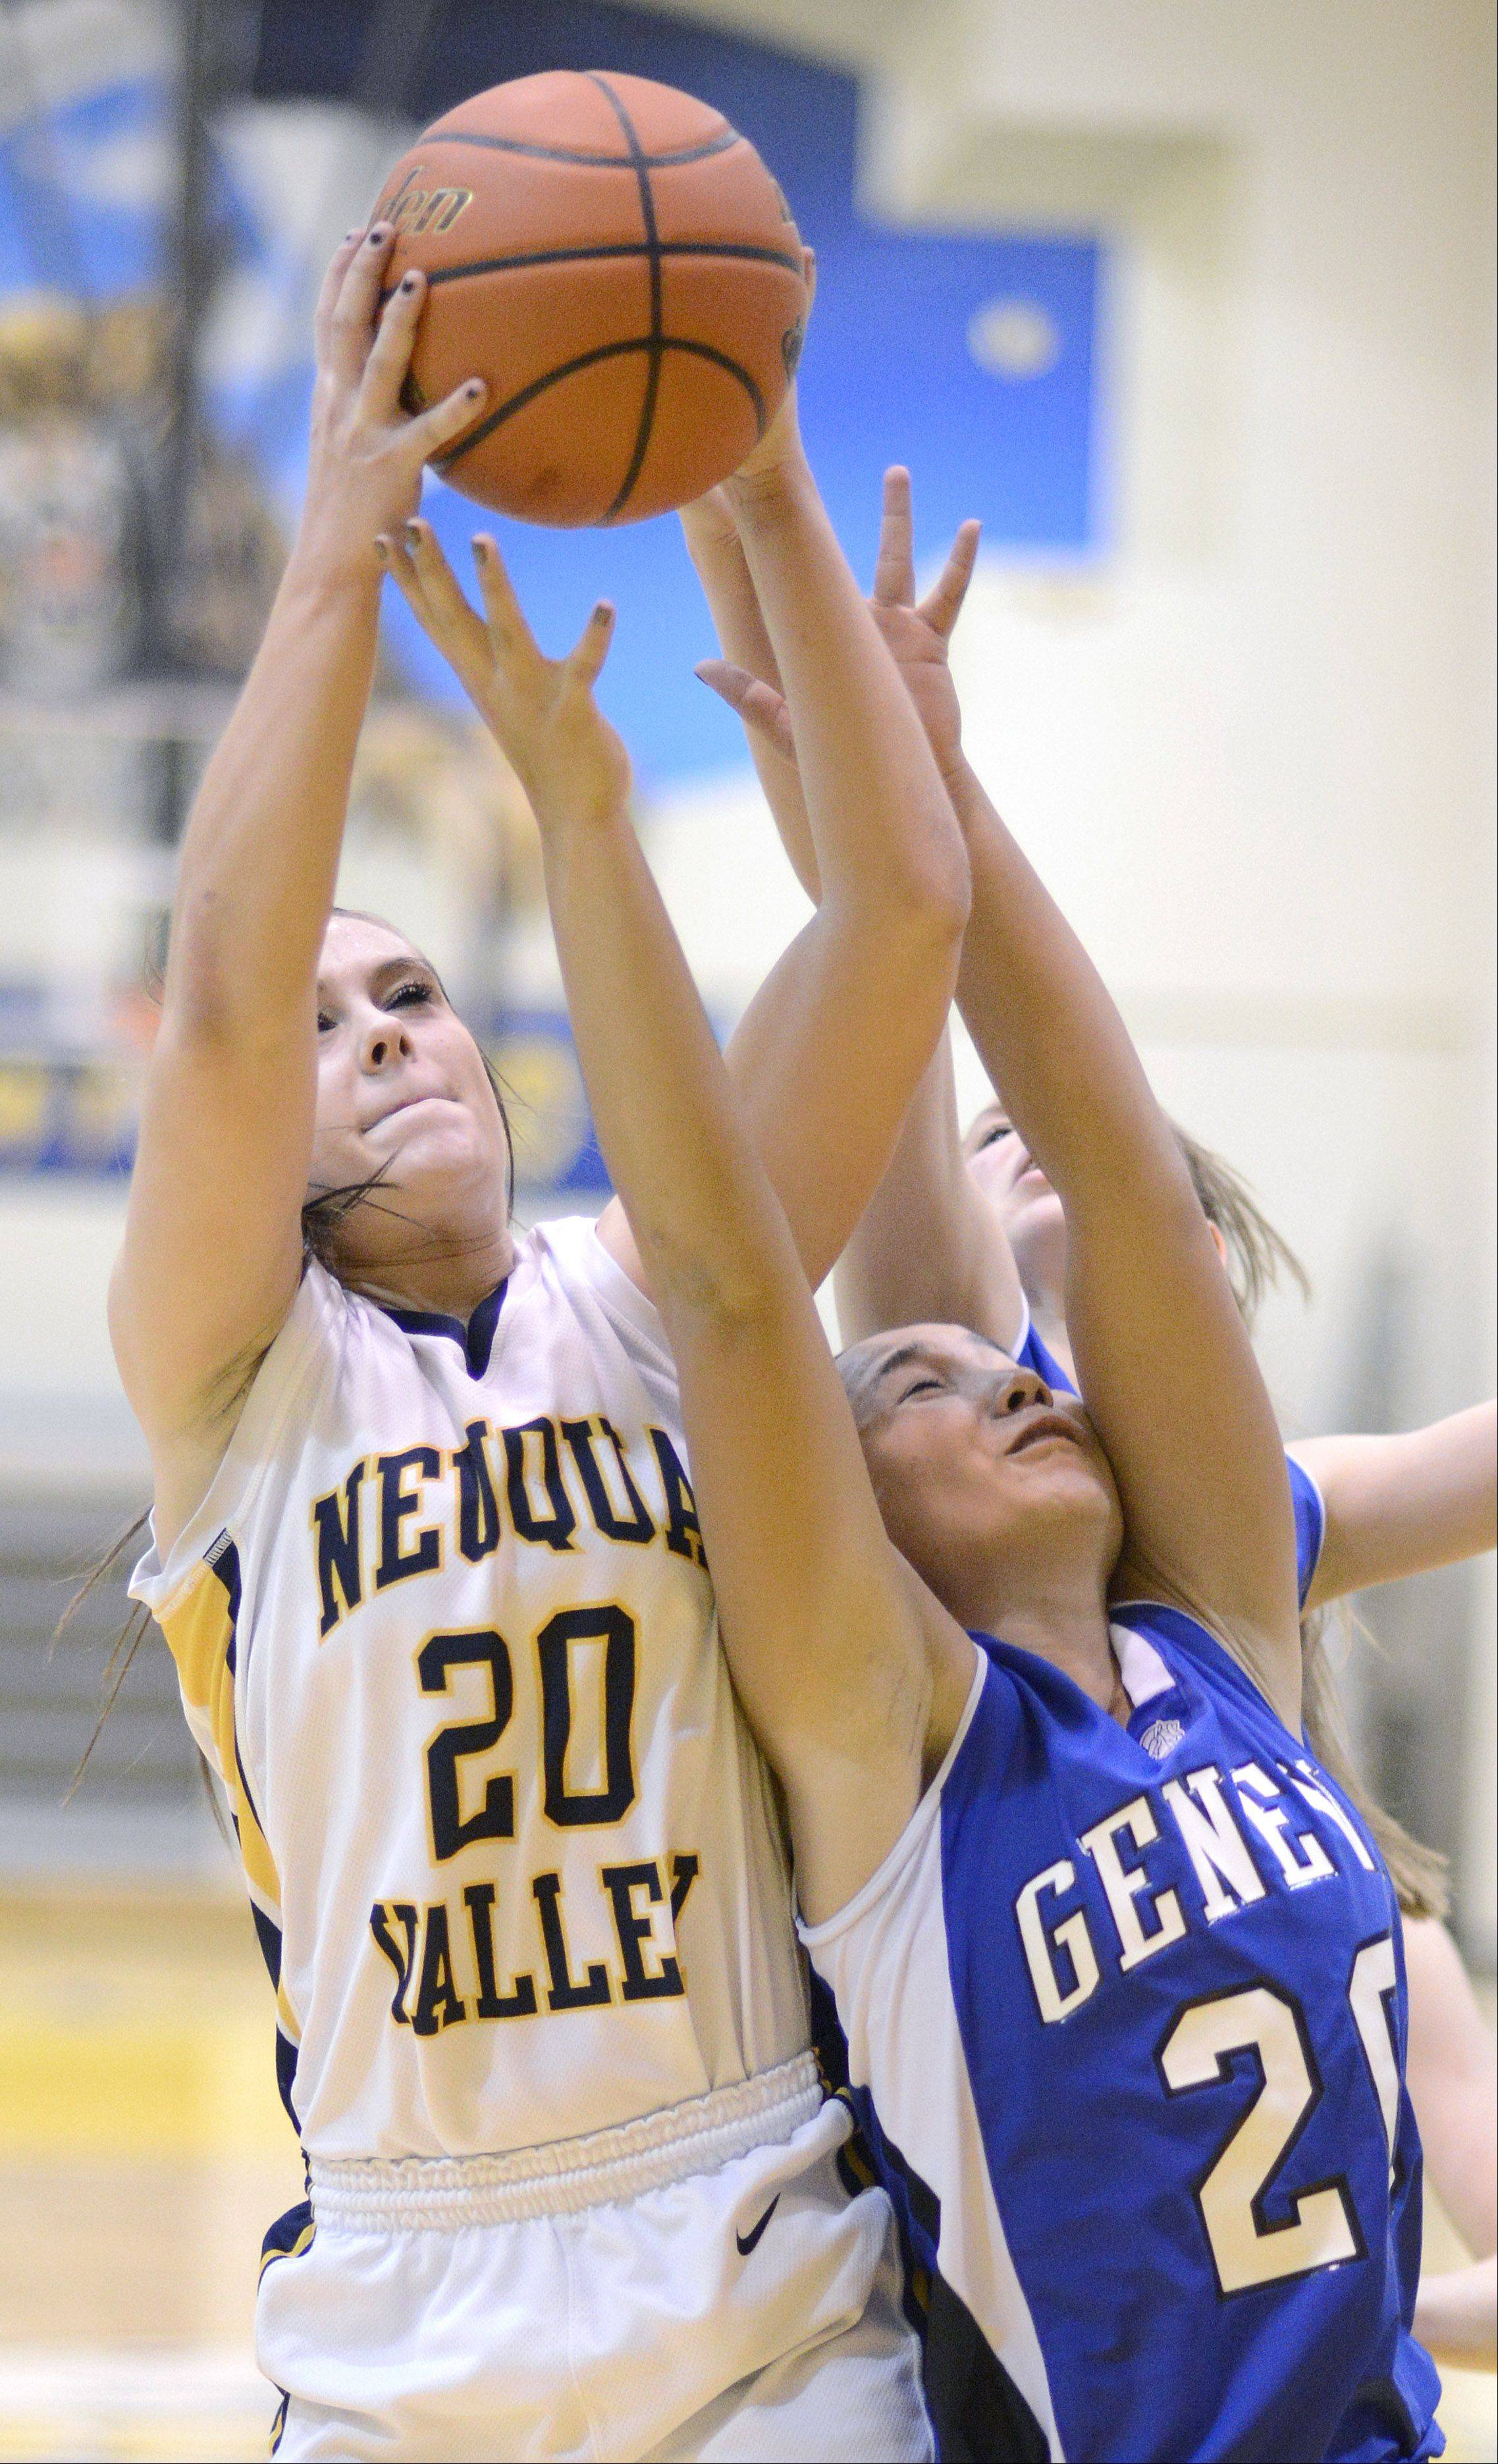 Geneva surprises No. 2 Neuqua Valley